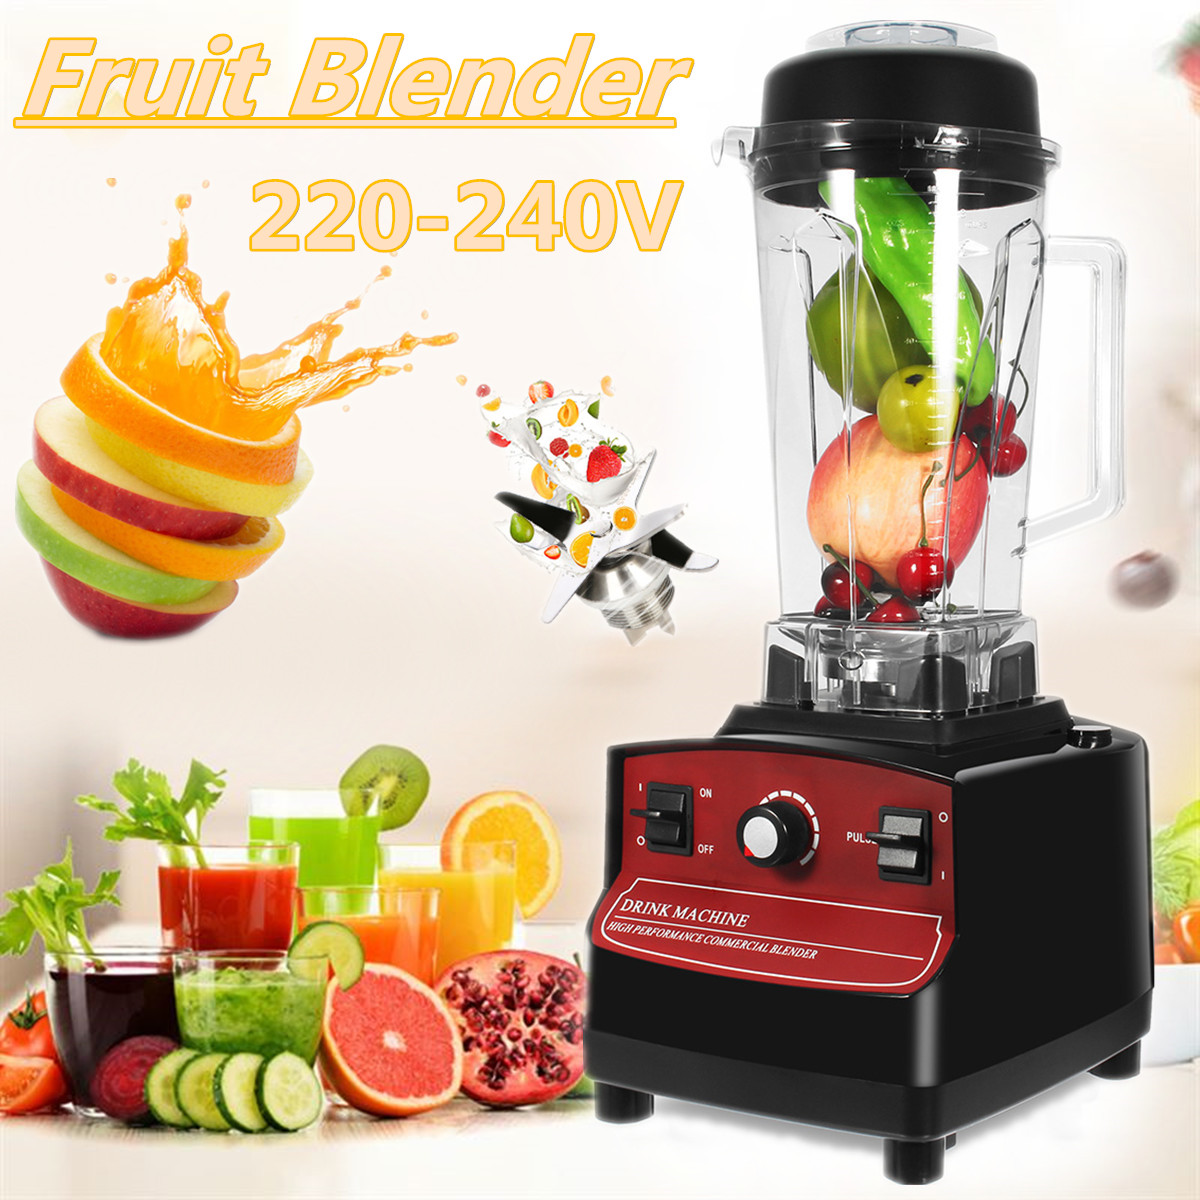 2L 1200W 220-240V AU/EU Plug Commercial-Blender Fruit Smoothie Mixer Juicer Machine Food Processor Stainless Steel Cutting купить в Москве 2019